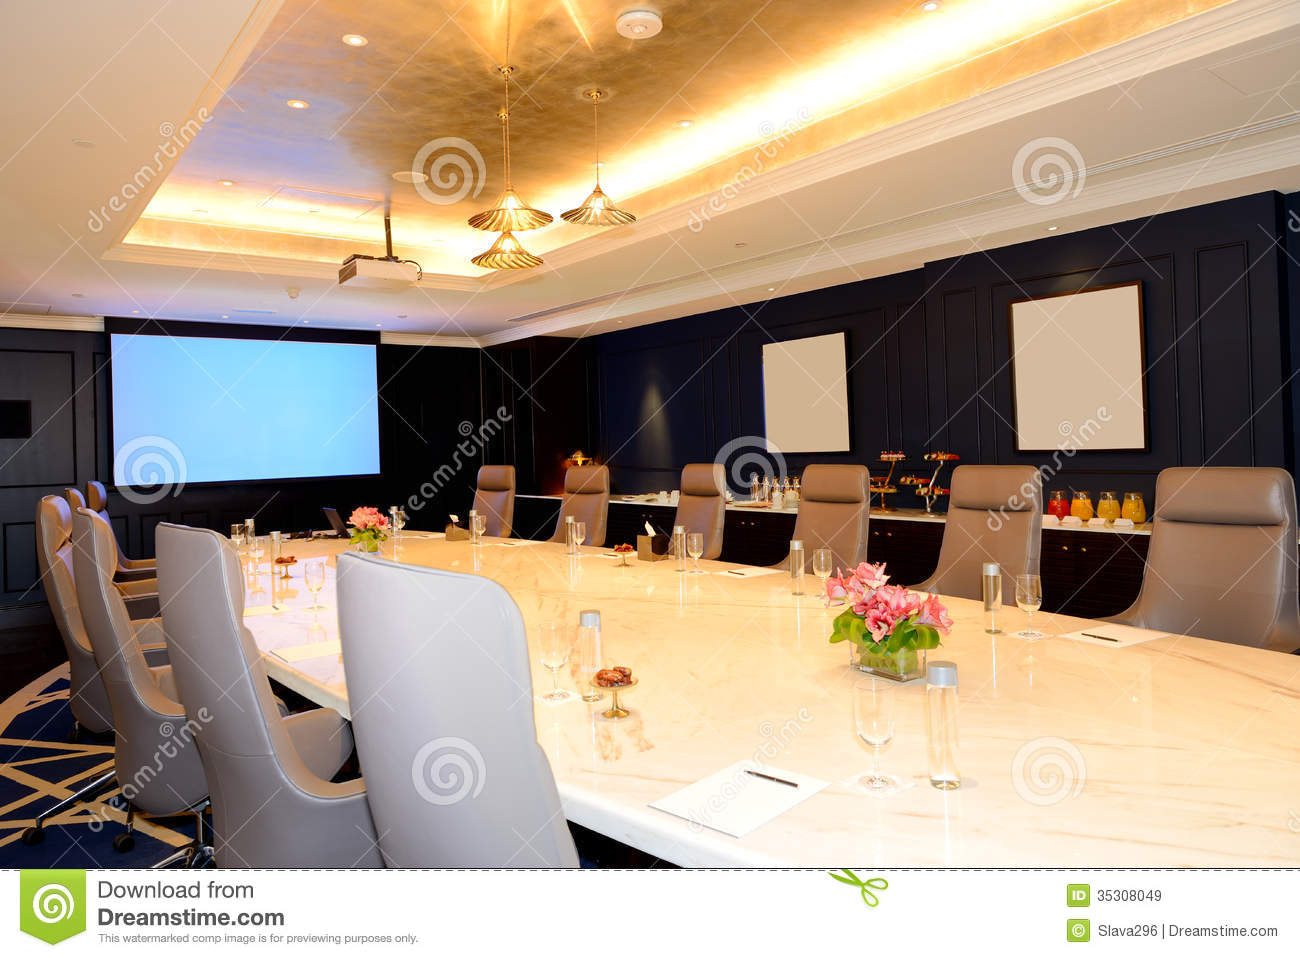 The Meeting Room Interior At Luxury Hotel Stock Images - Image